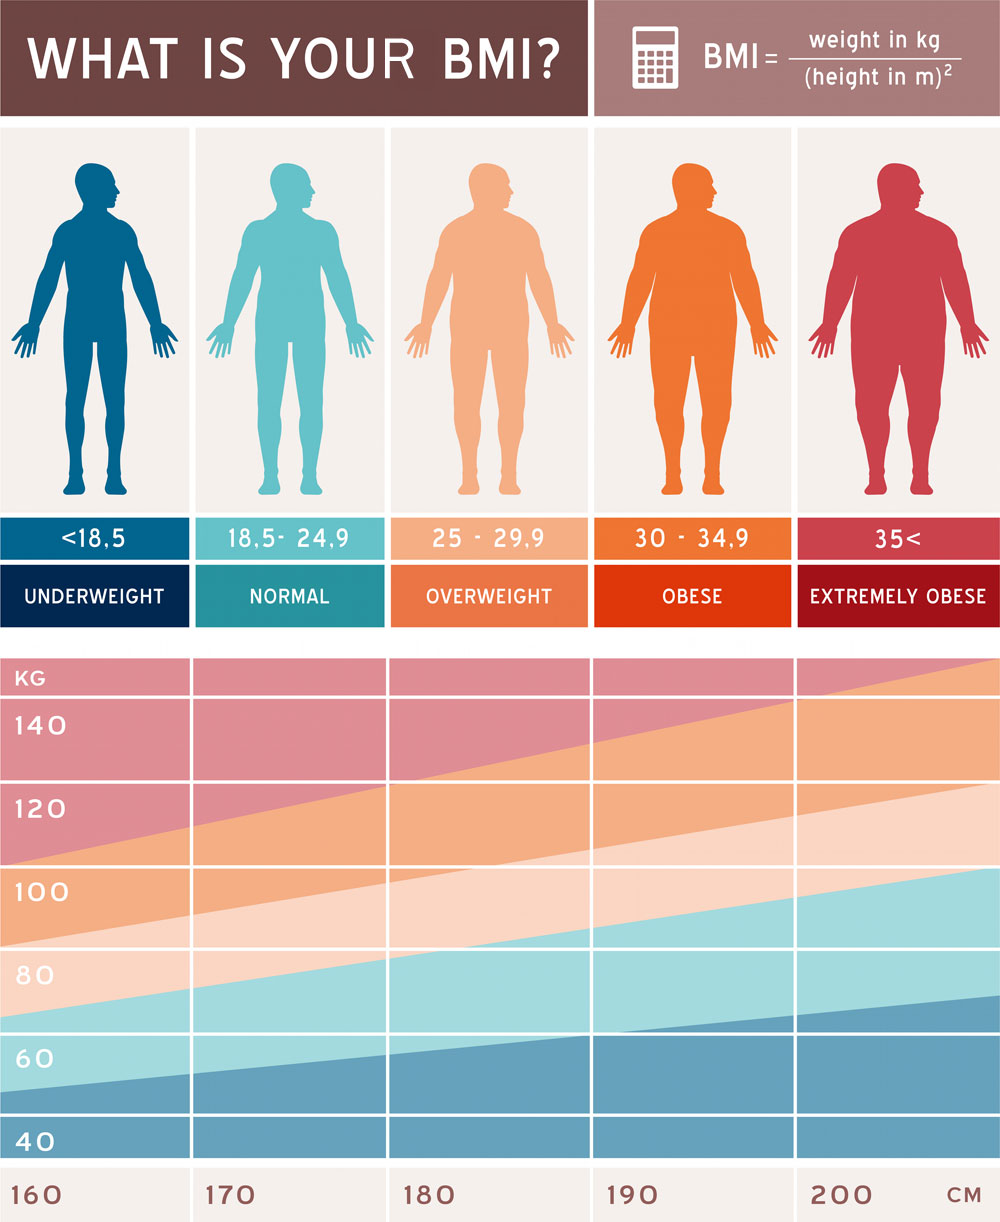 If You Have A Bmi Under 185 You Are Classified As Underweight, 185 To 25  Is Healthy, 2530 Is Overweight And Over 30 Is Obese